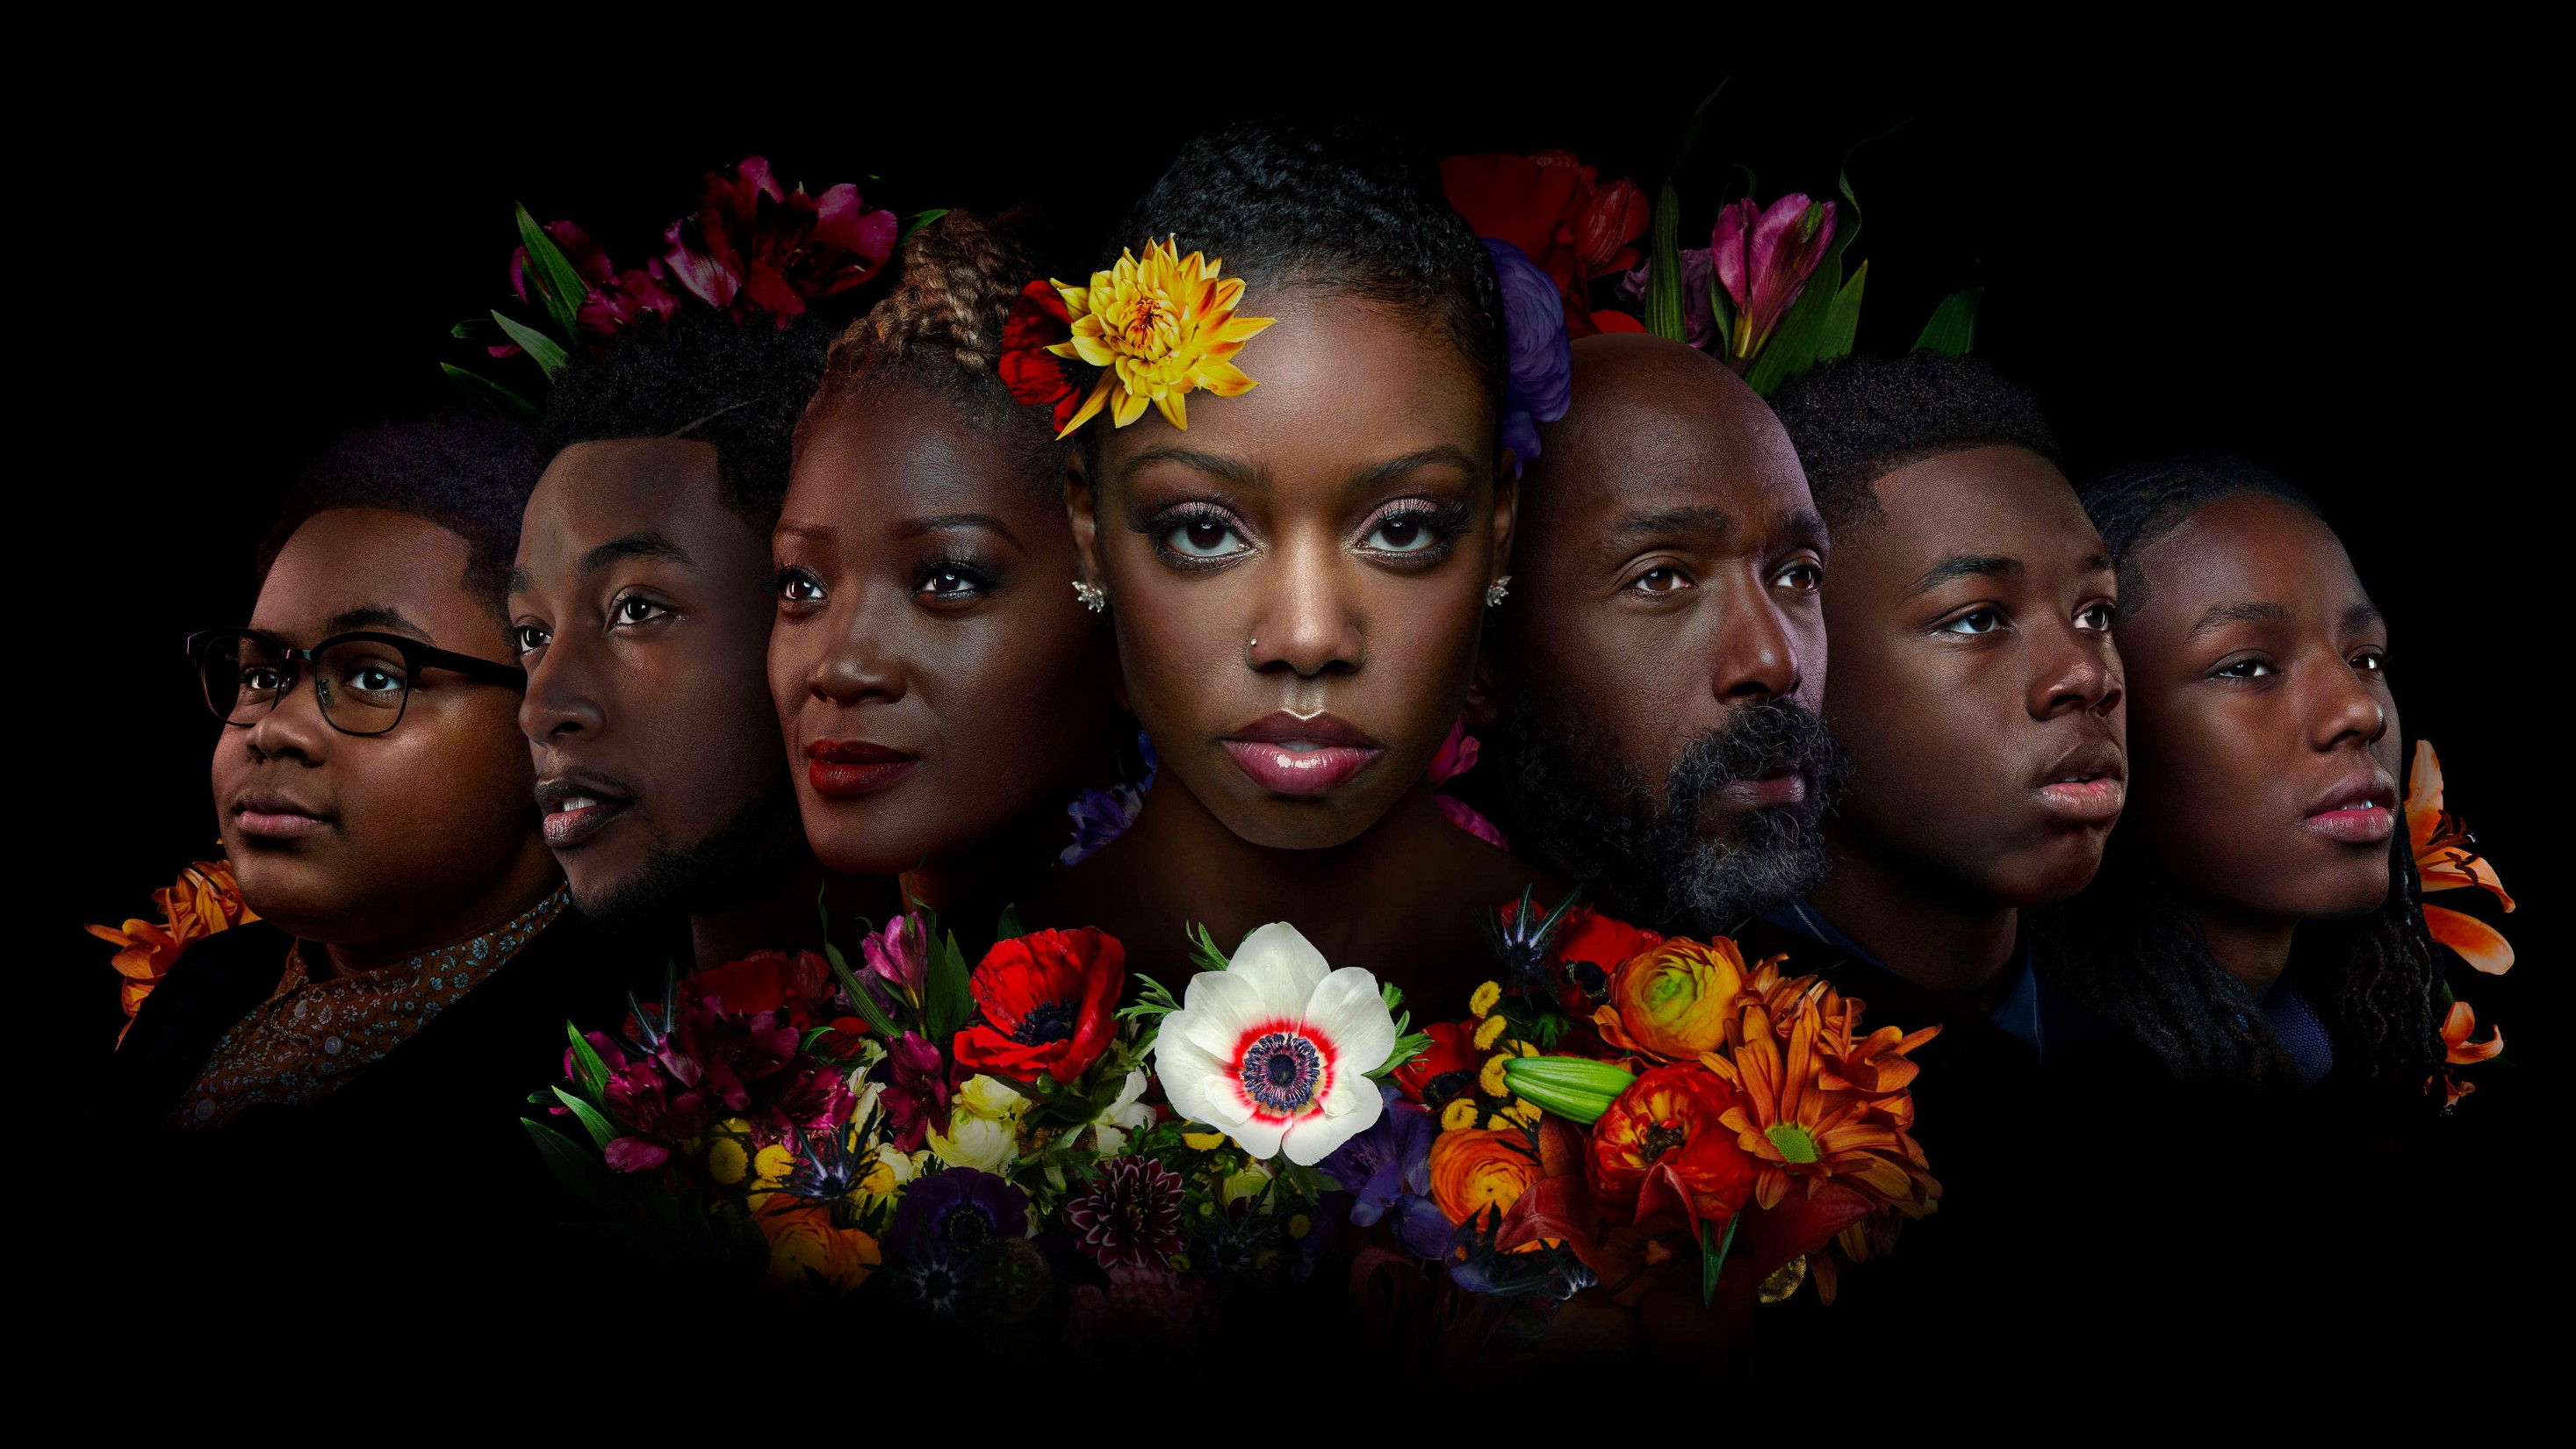 Download The Chi Full Episodes S03e07 Episode 7 By The Chi Jul 2020 Medium